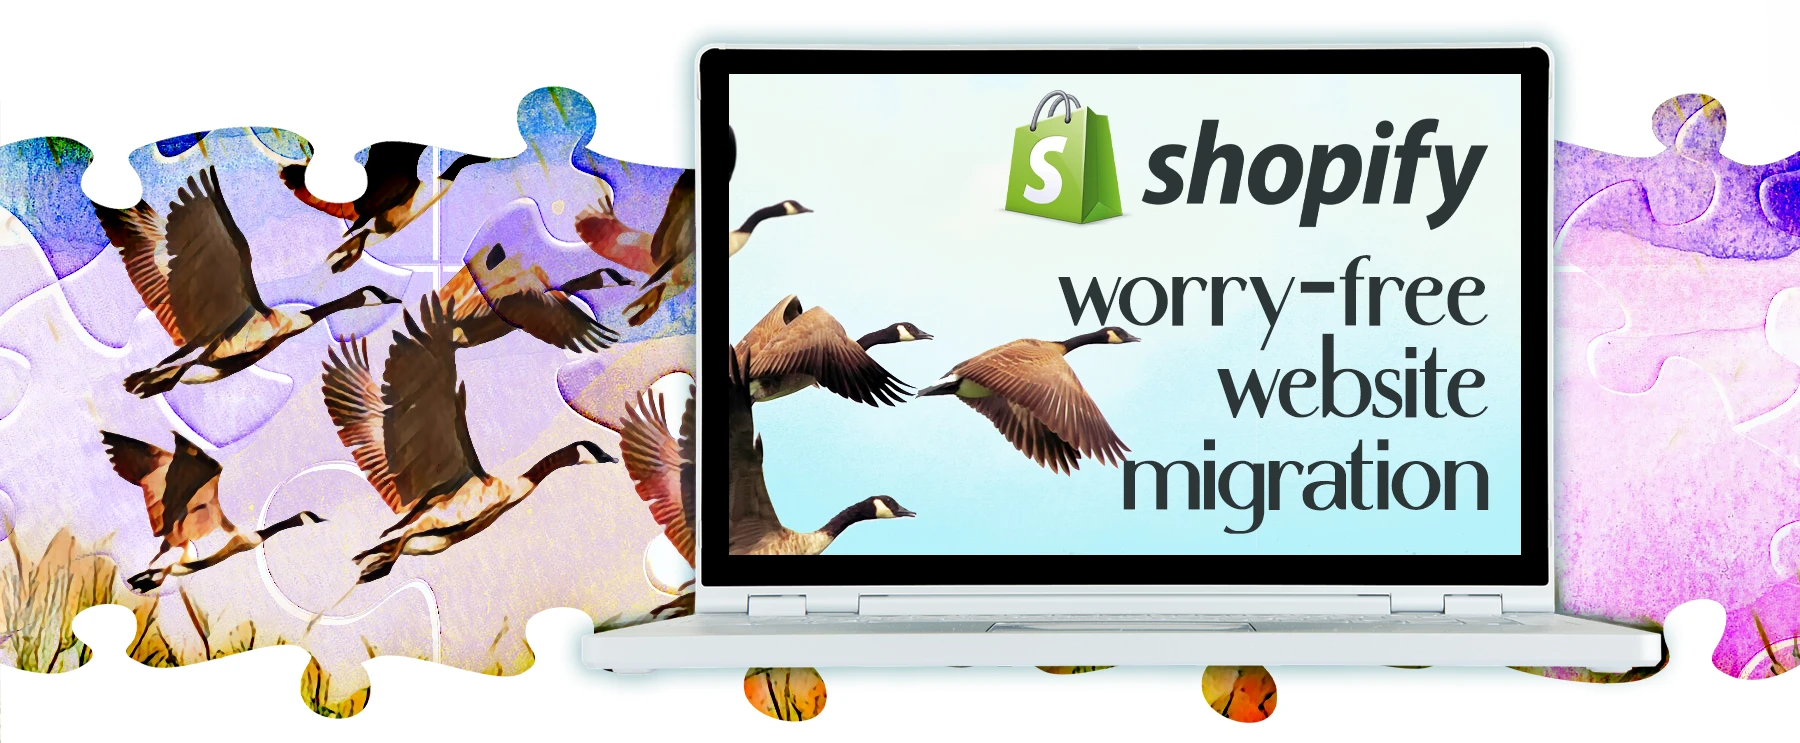 Worry Free Website Migrations to Shopify by 2FriendsDesigns